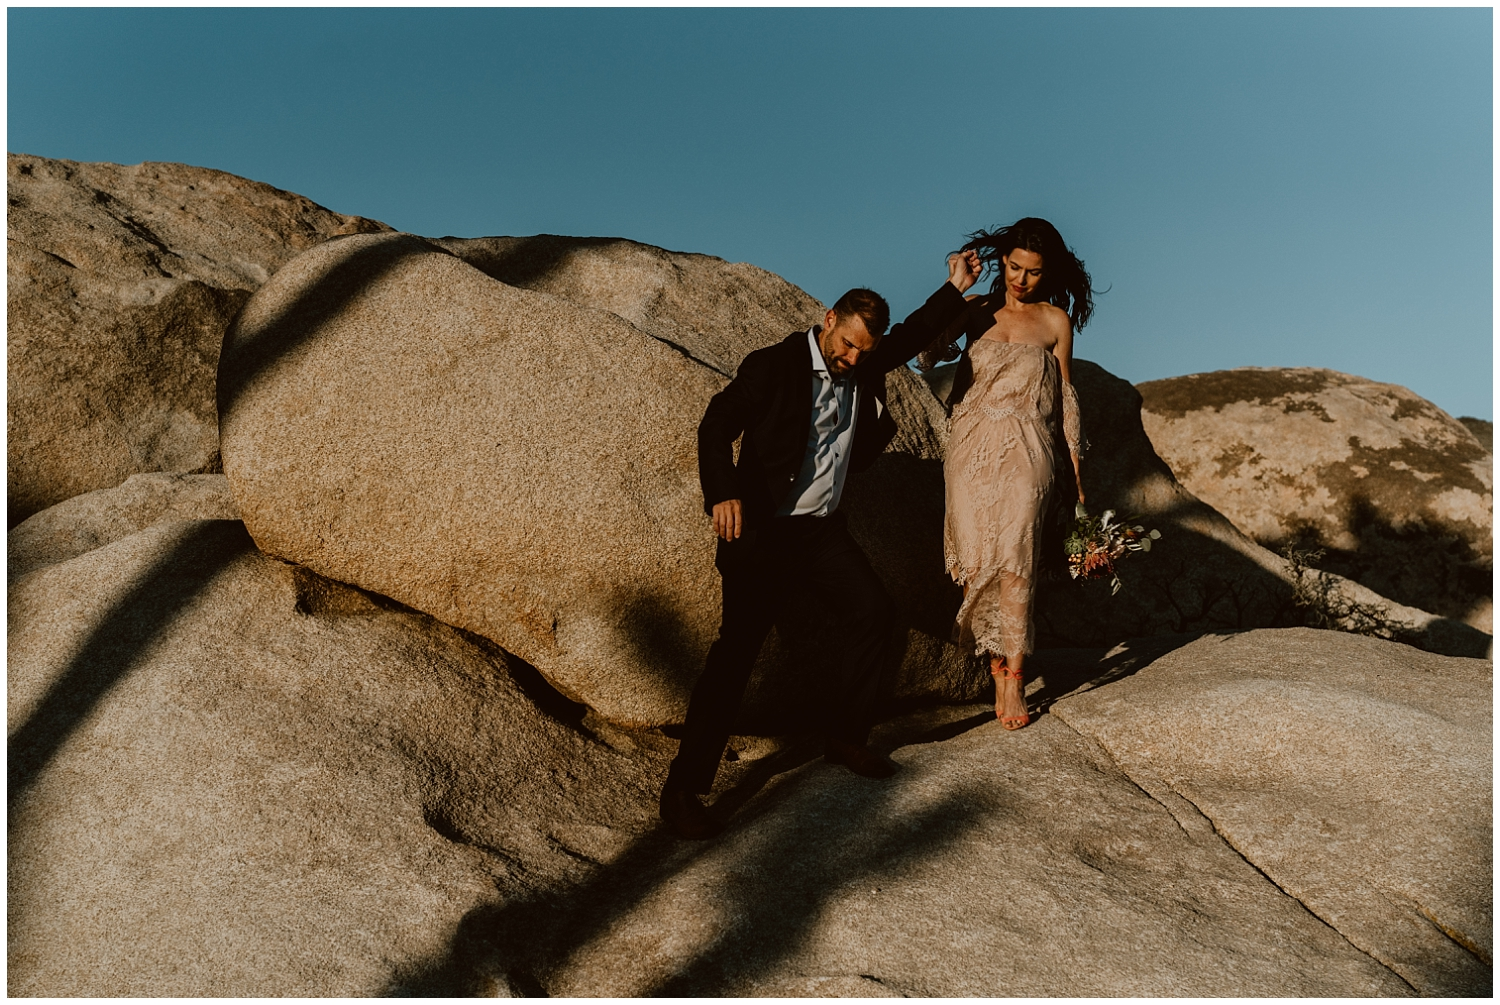 Cap-Rock-Joshua-Tree-Elopement-0068.jpg